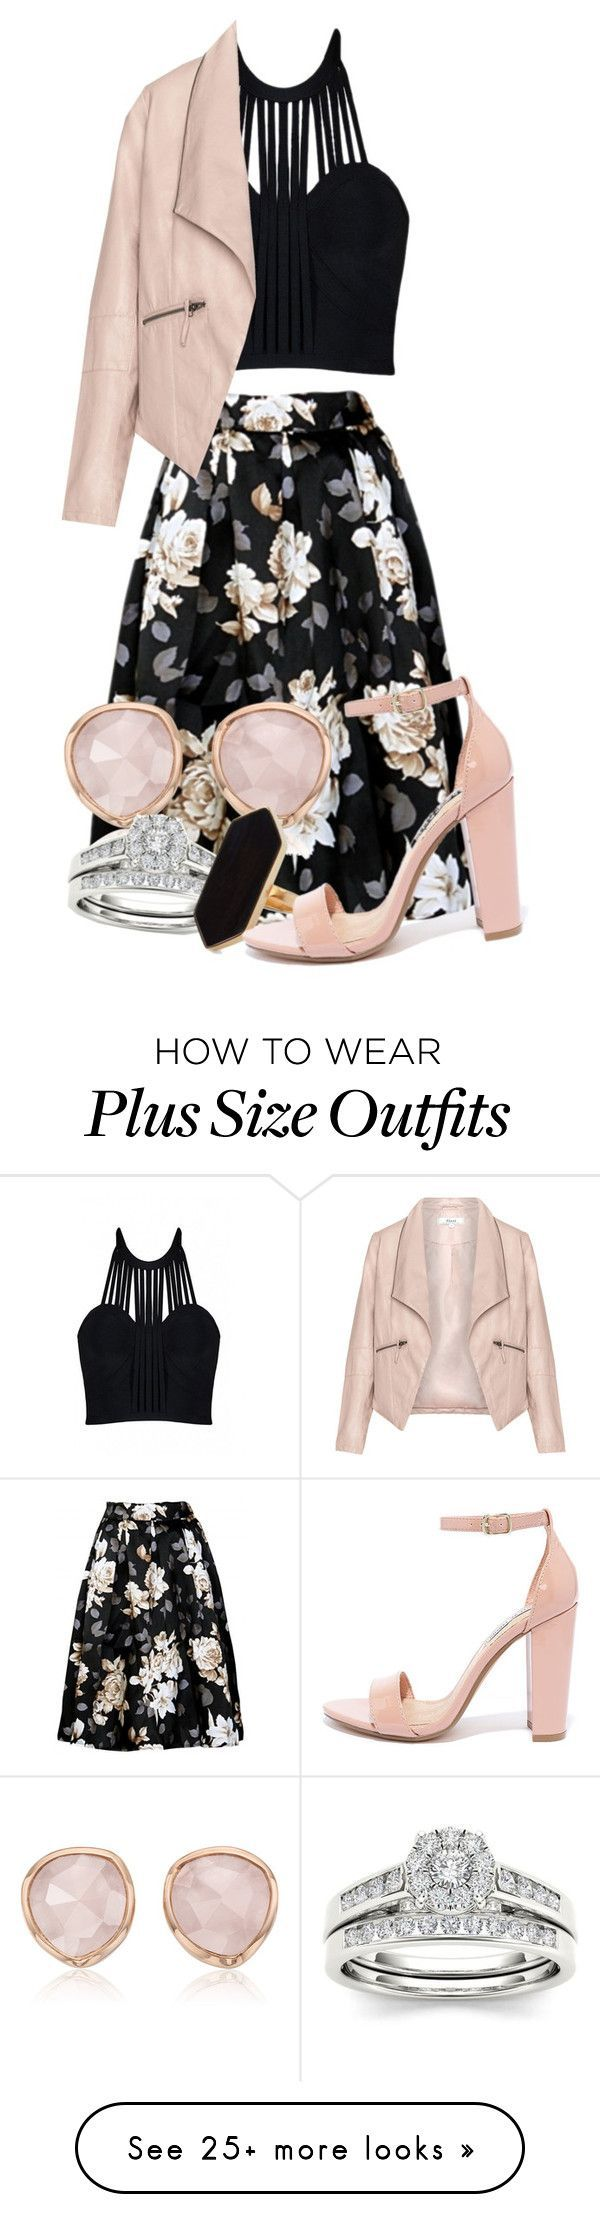 cool Plus Size Sets by http://www.globalfashionista.xyz/plus-size-fashion/plus-size-sets-9/